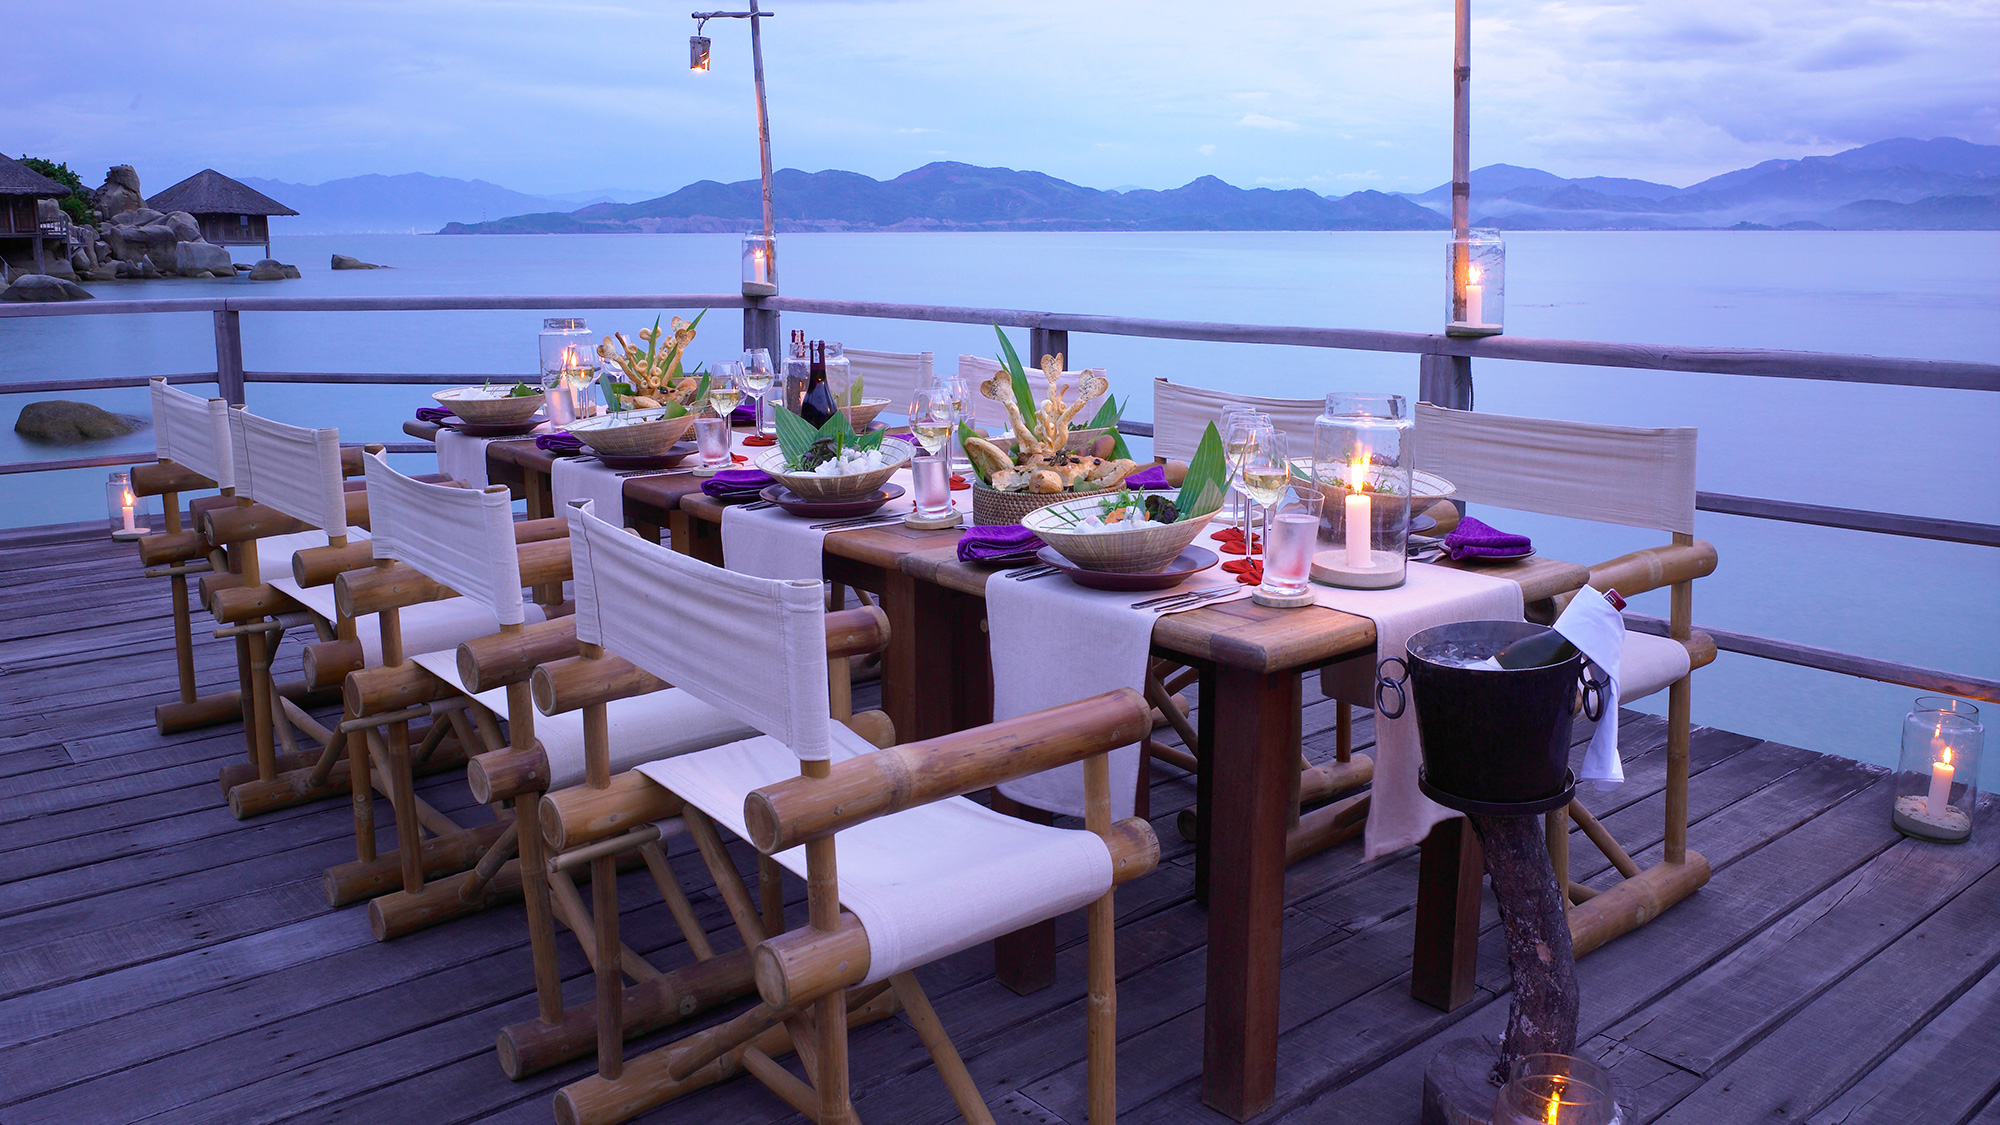 6. Dining by The Bay at Six Senses Ninh Van Bay